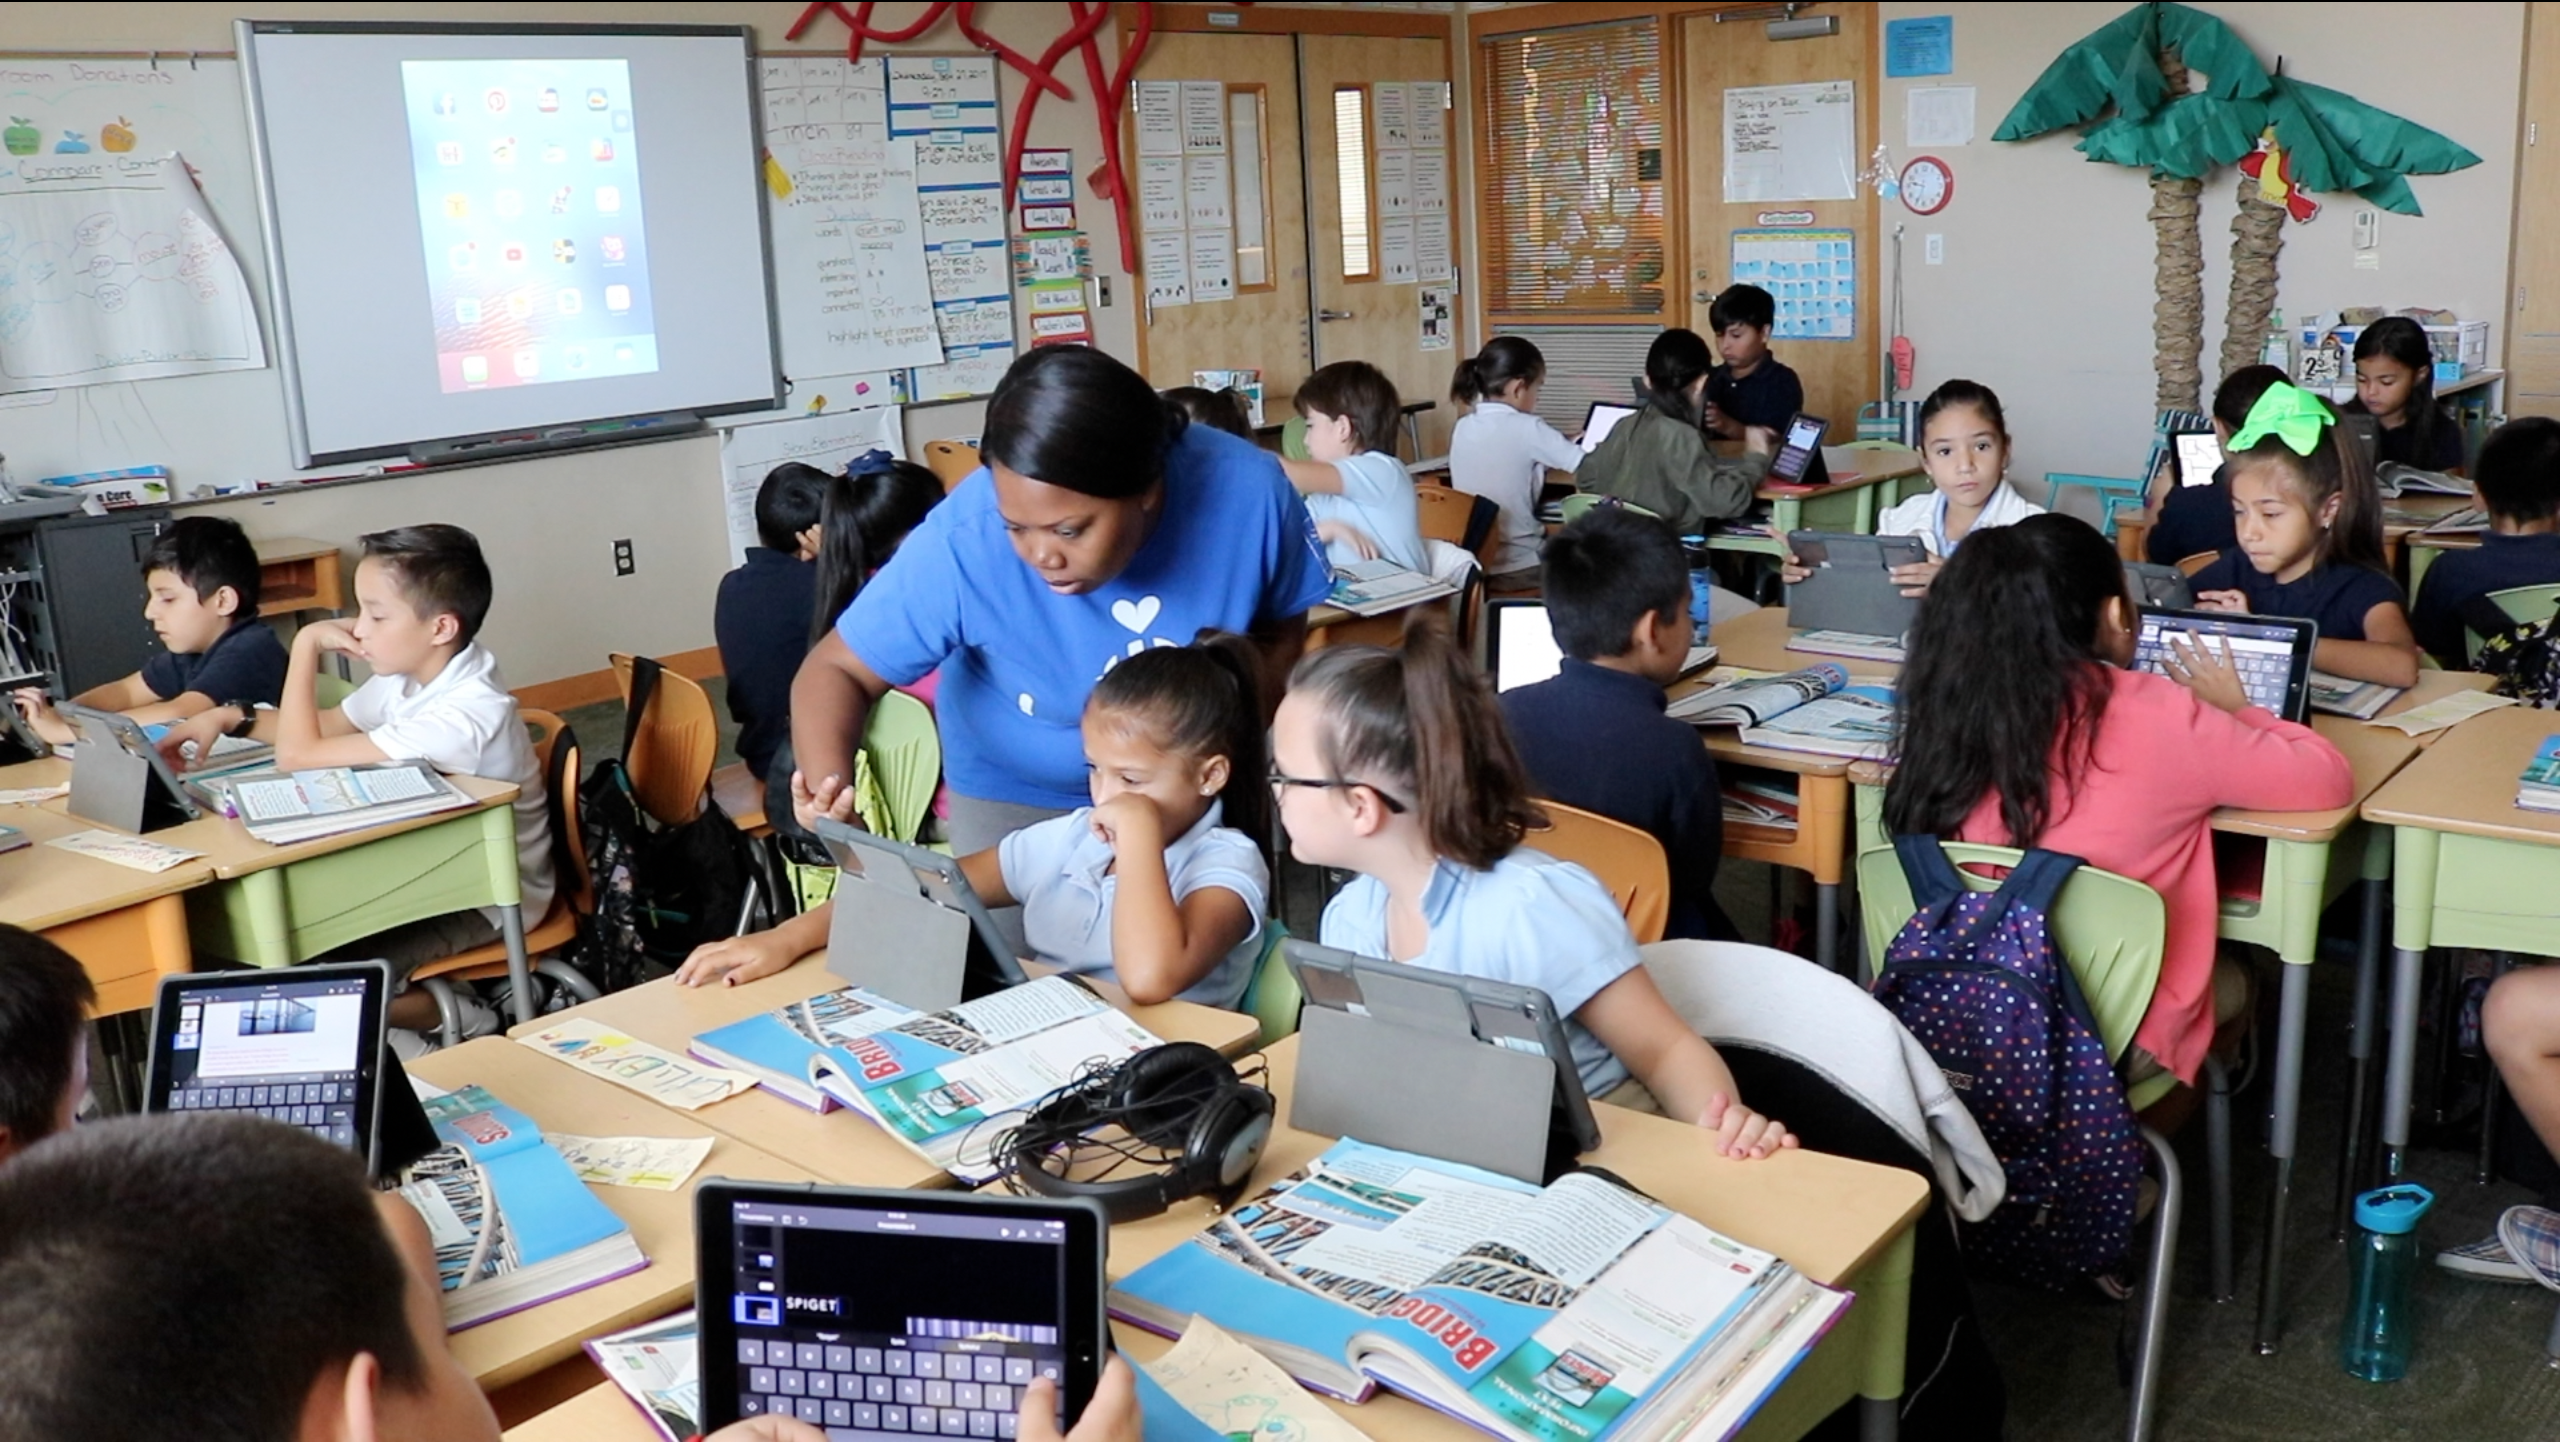 technology in the classroom can improve primary mathematics